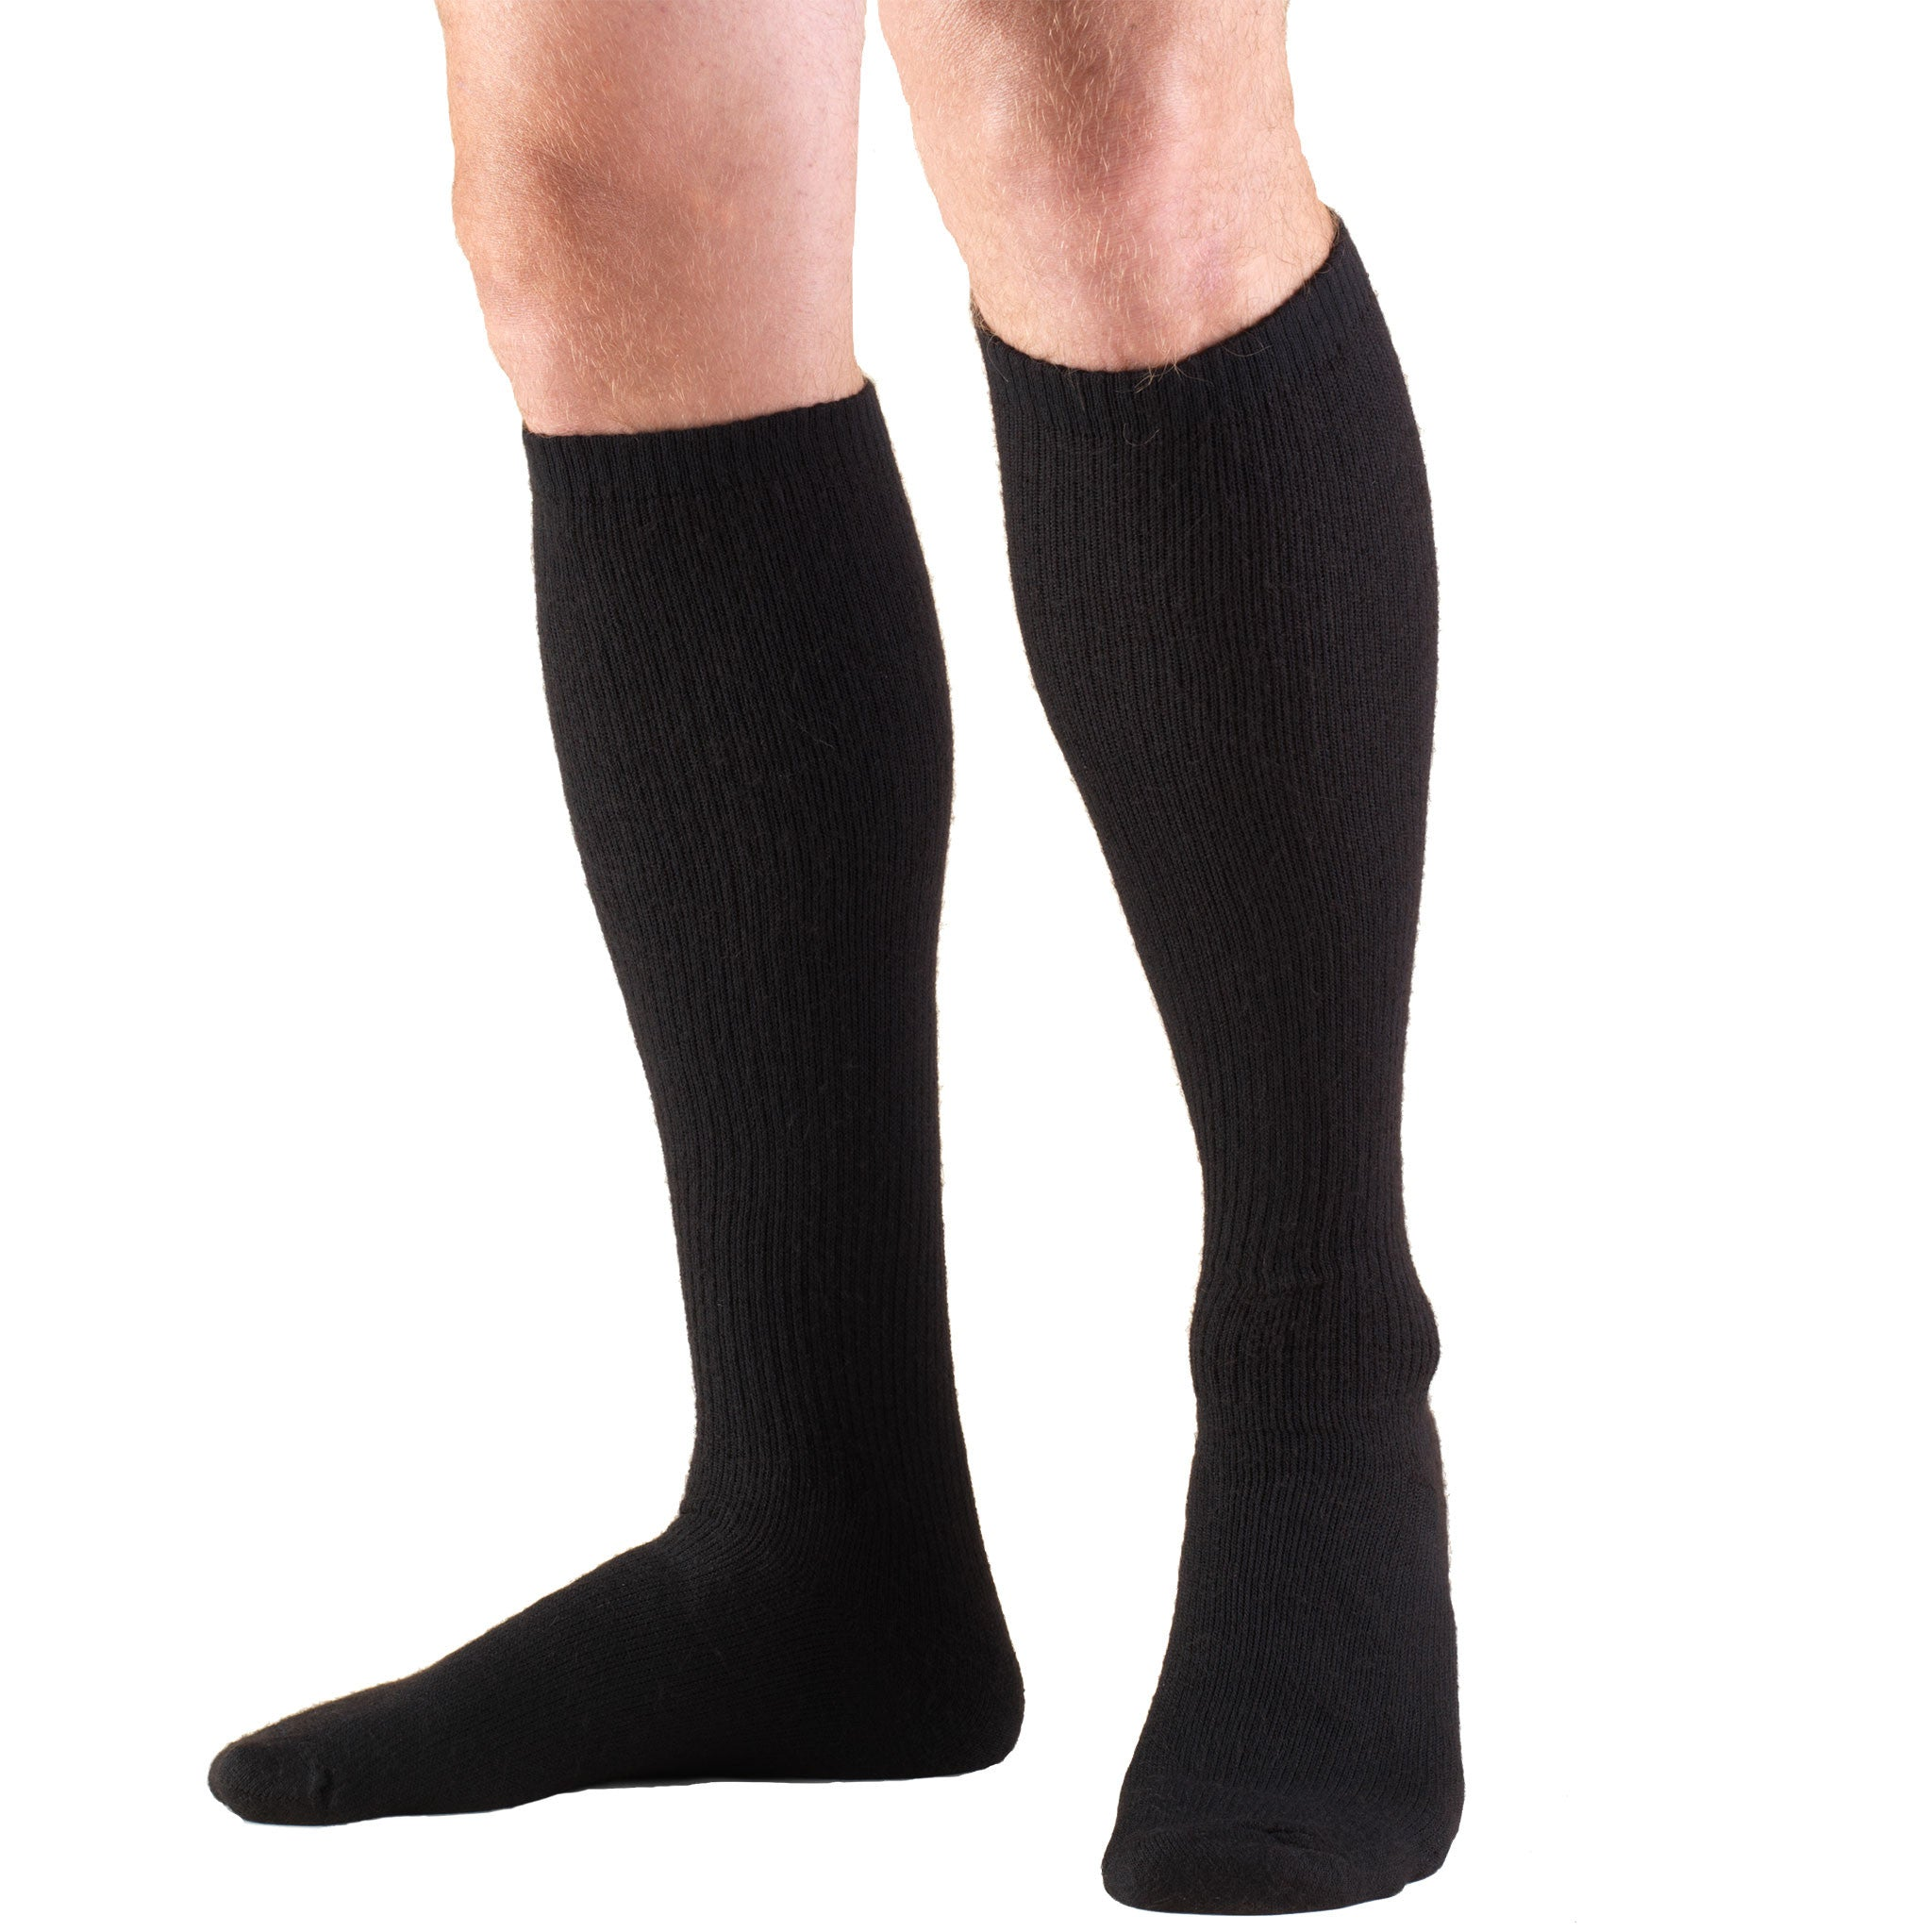 1913 Knee High Black TruSoft Socks